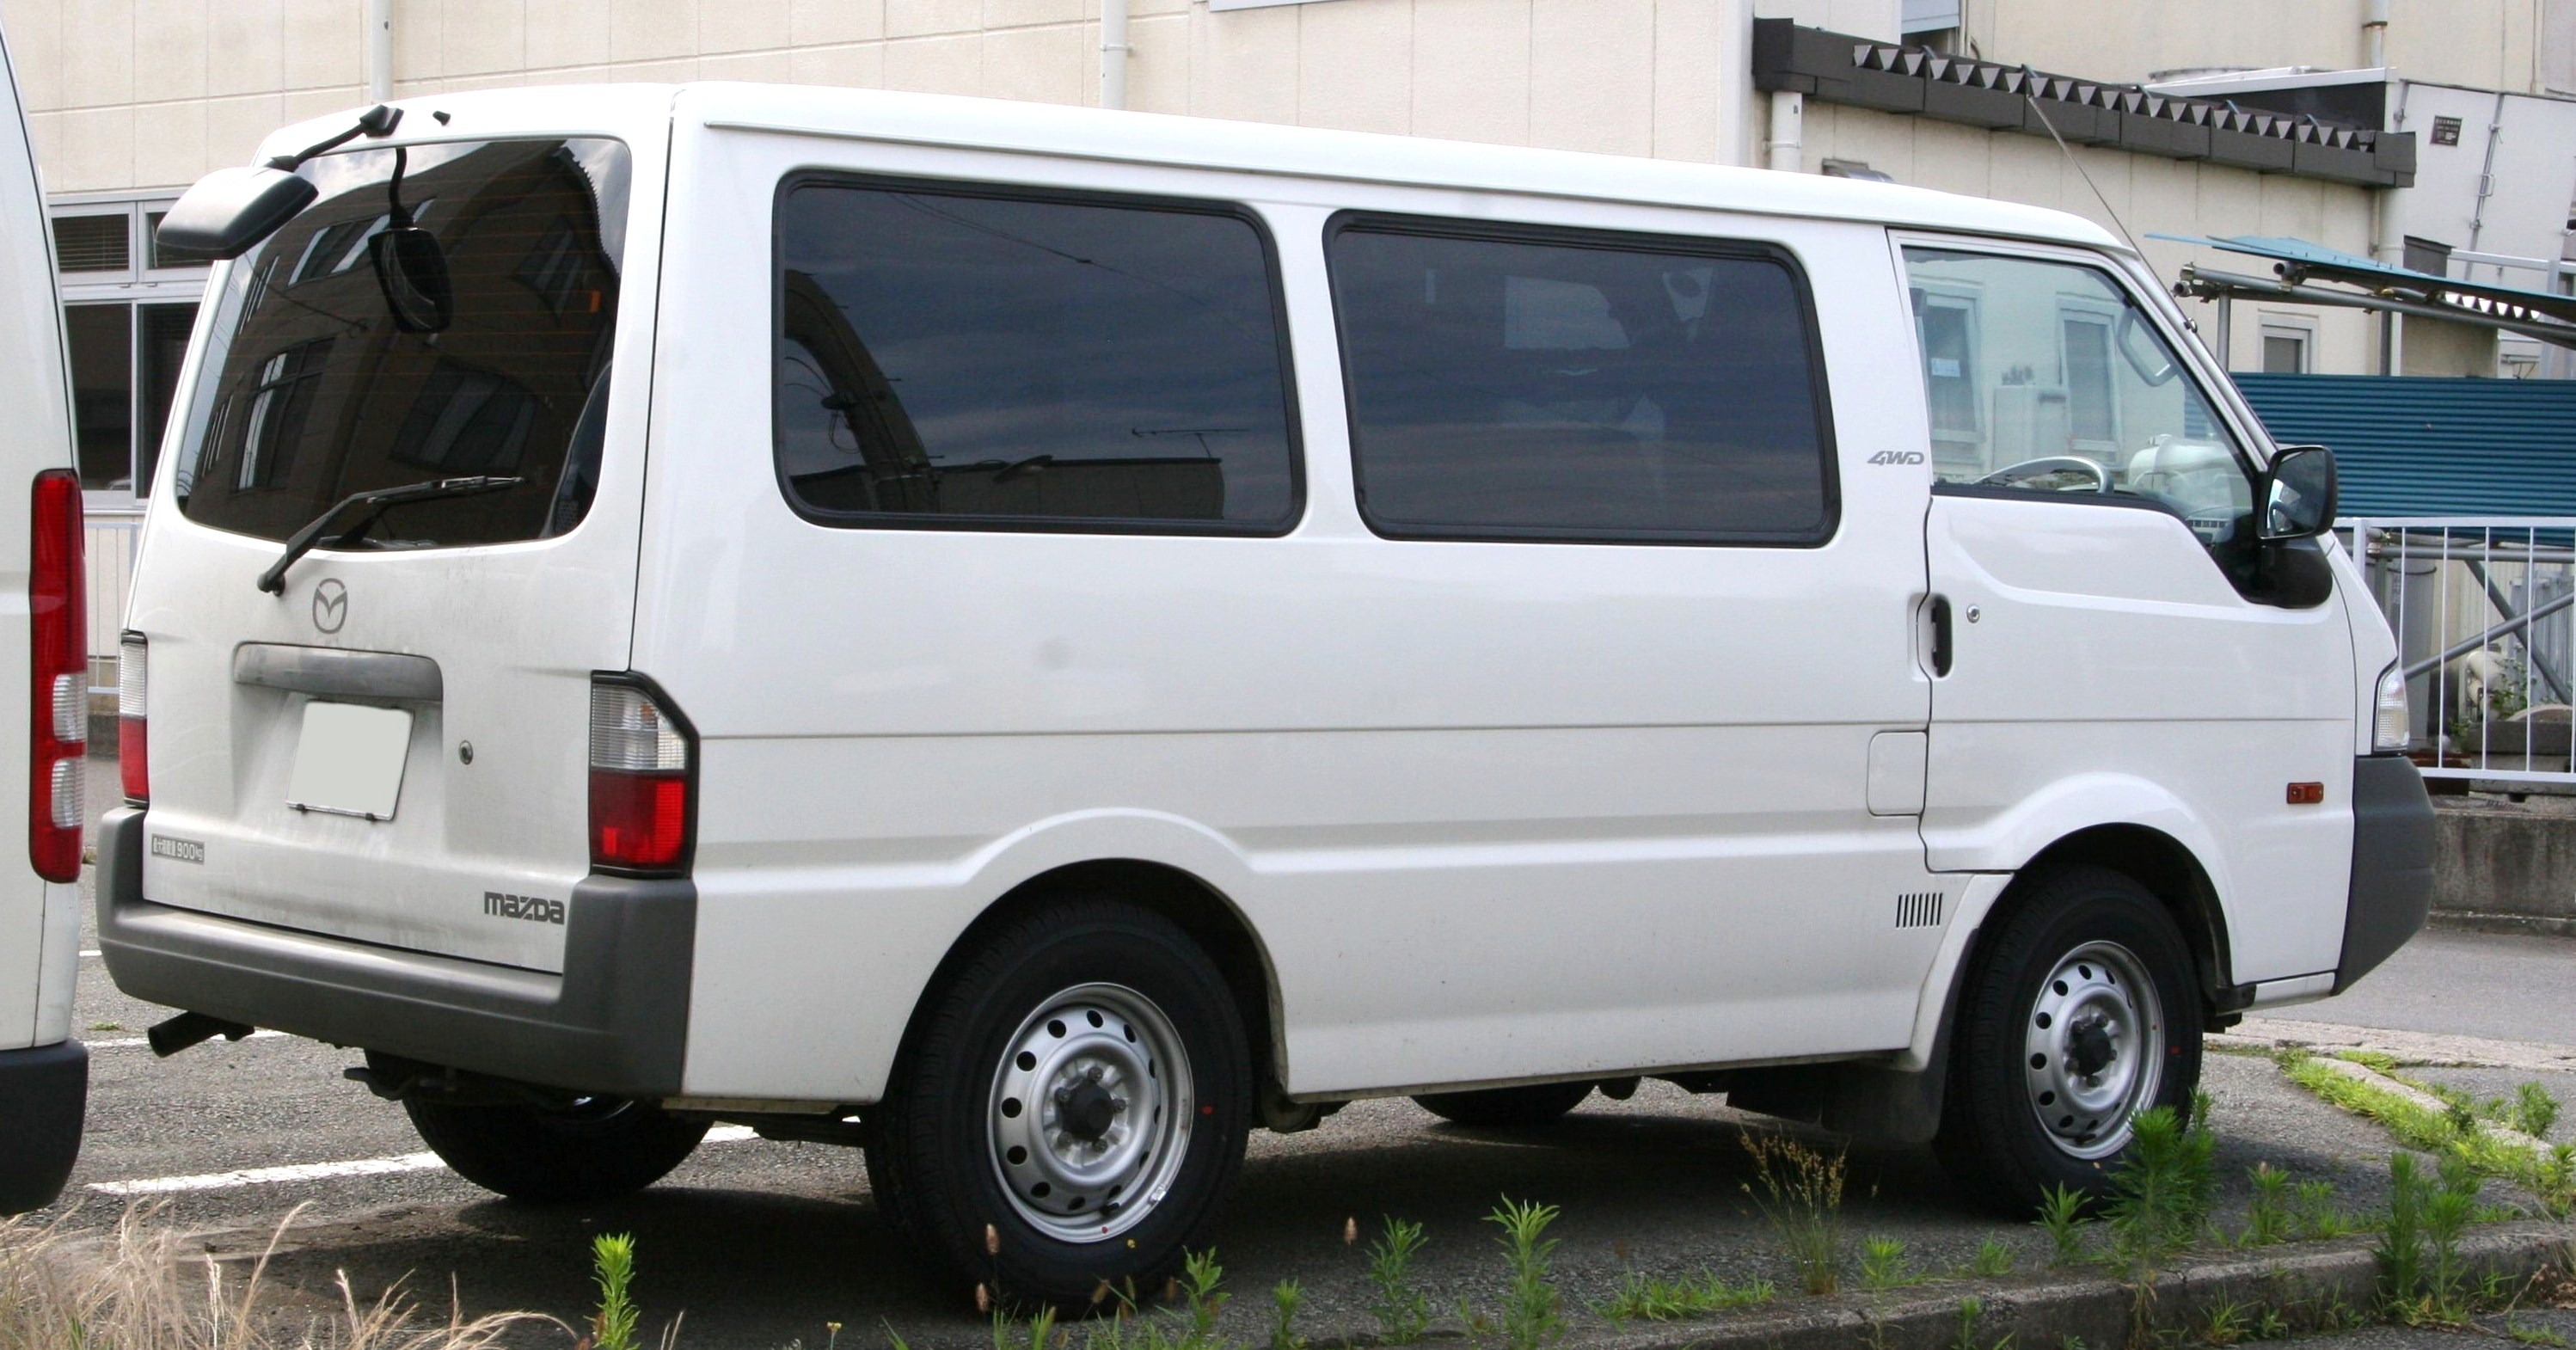 File:Mazda Bongo Van rear.jpg - Wikimedia Commons